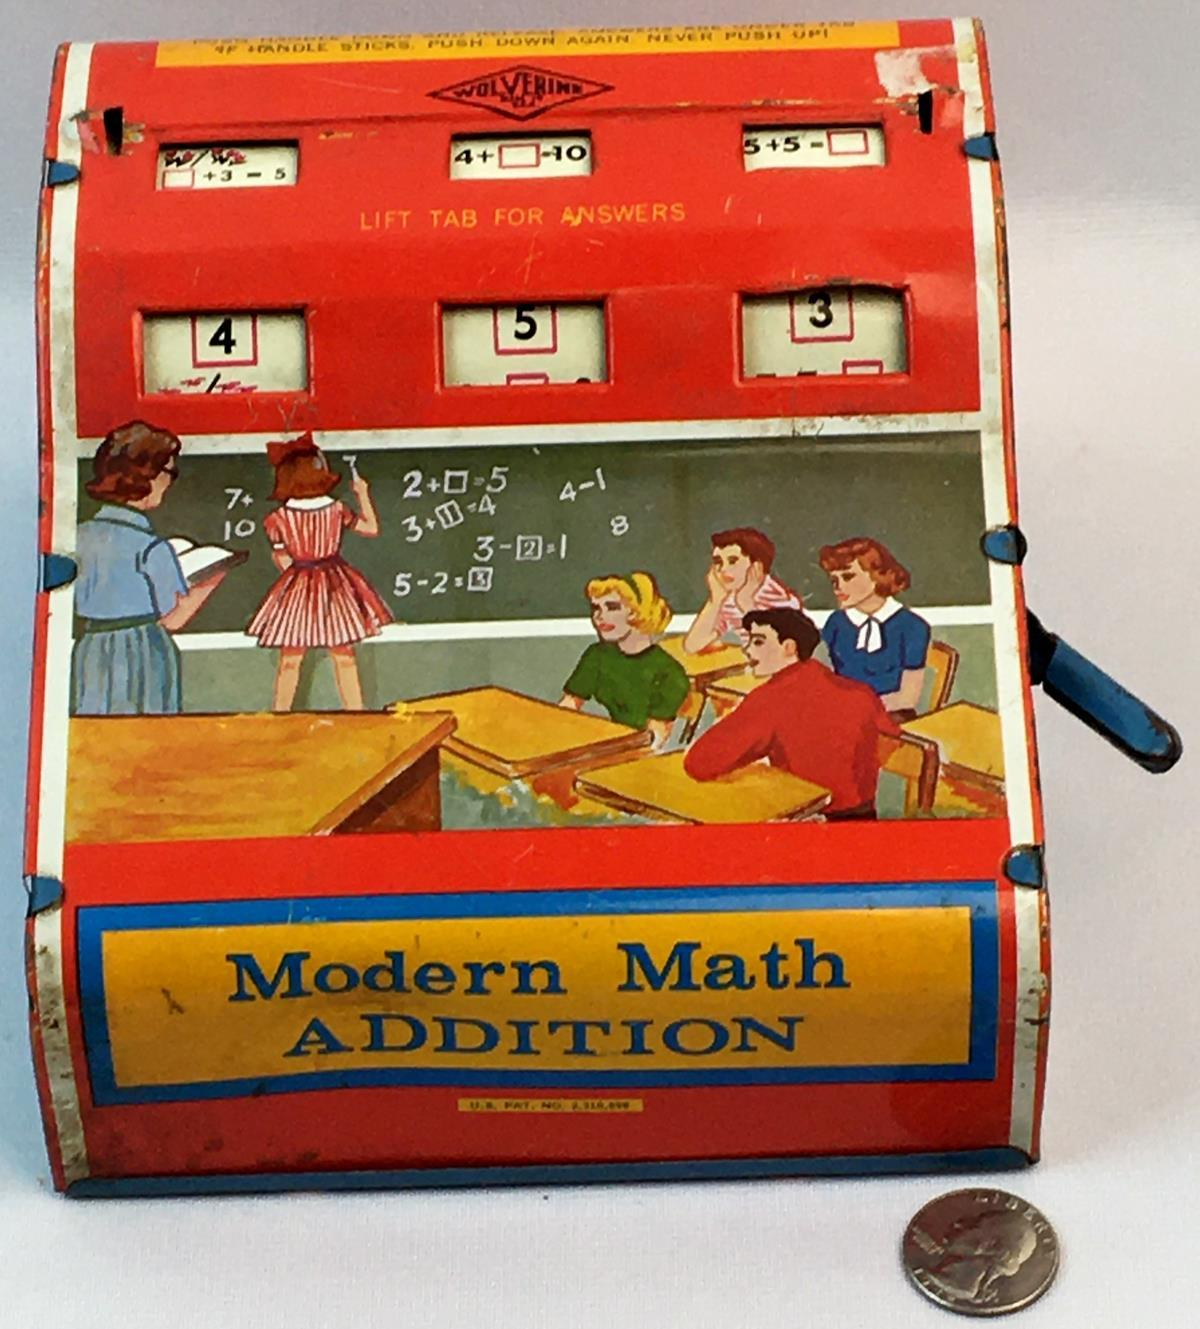 Vintage 1950's Wolverine Tin Litho Modern Math Addition Toy